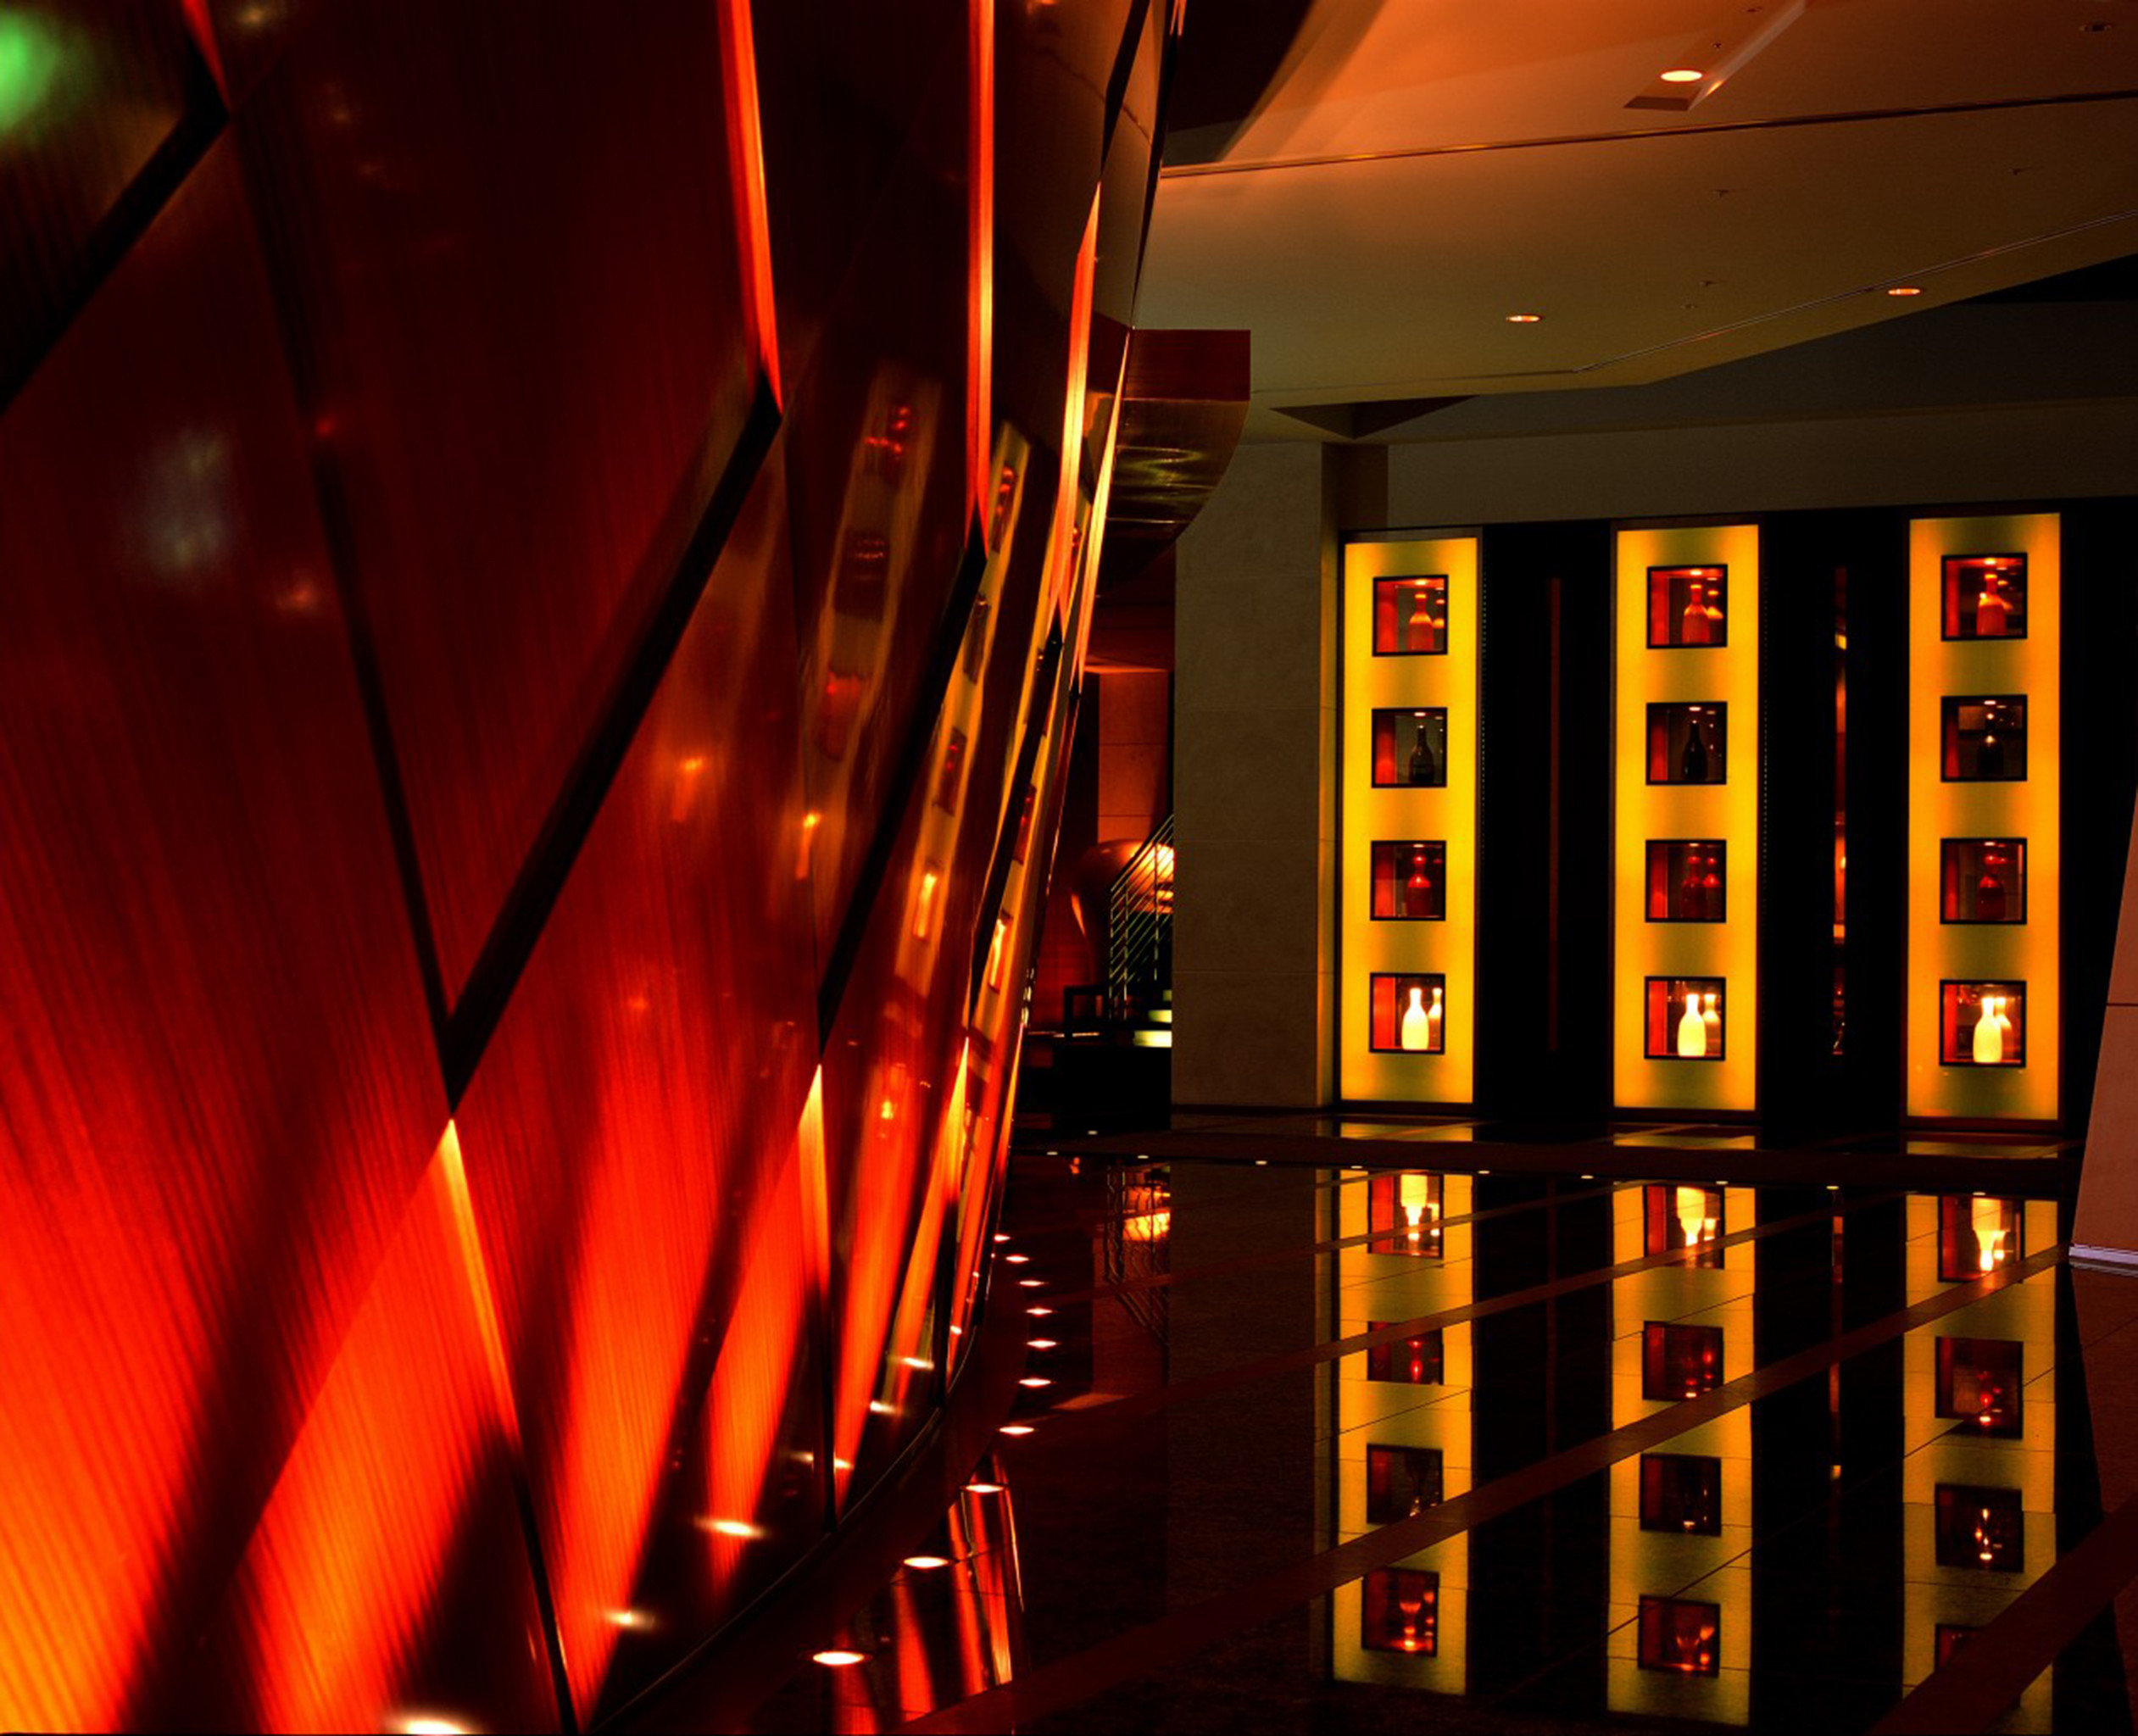 City Lobby Modern color red light night darkness stage